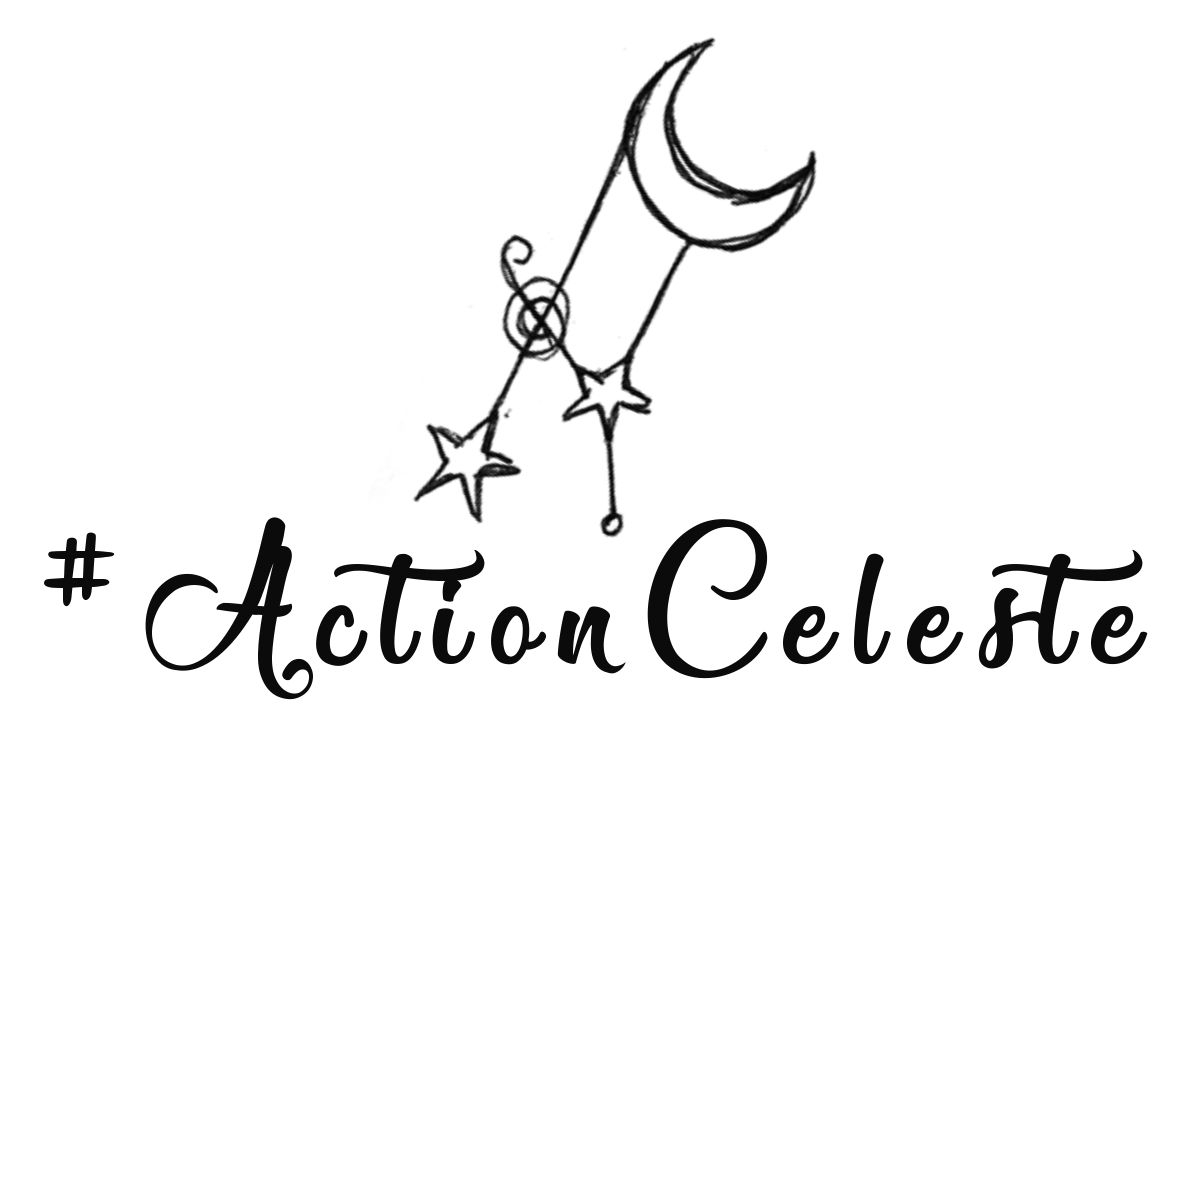 Association - #ActionCeleste